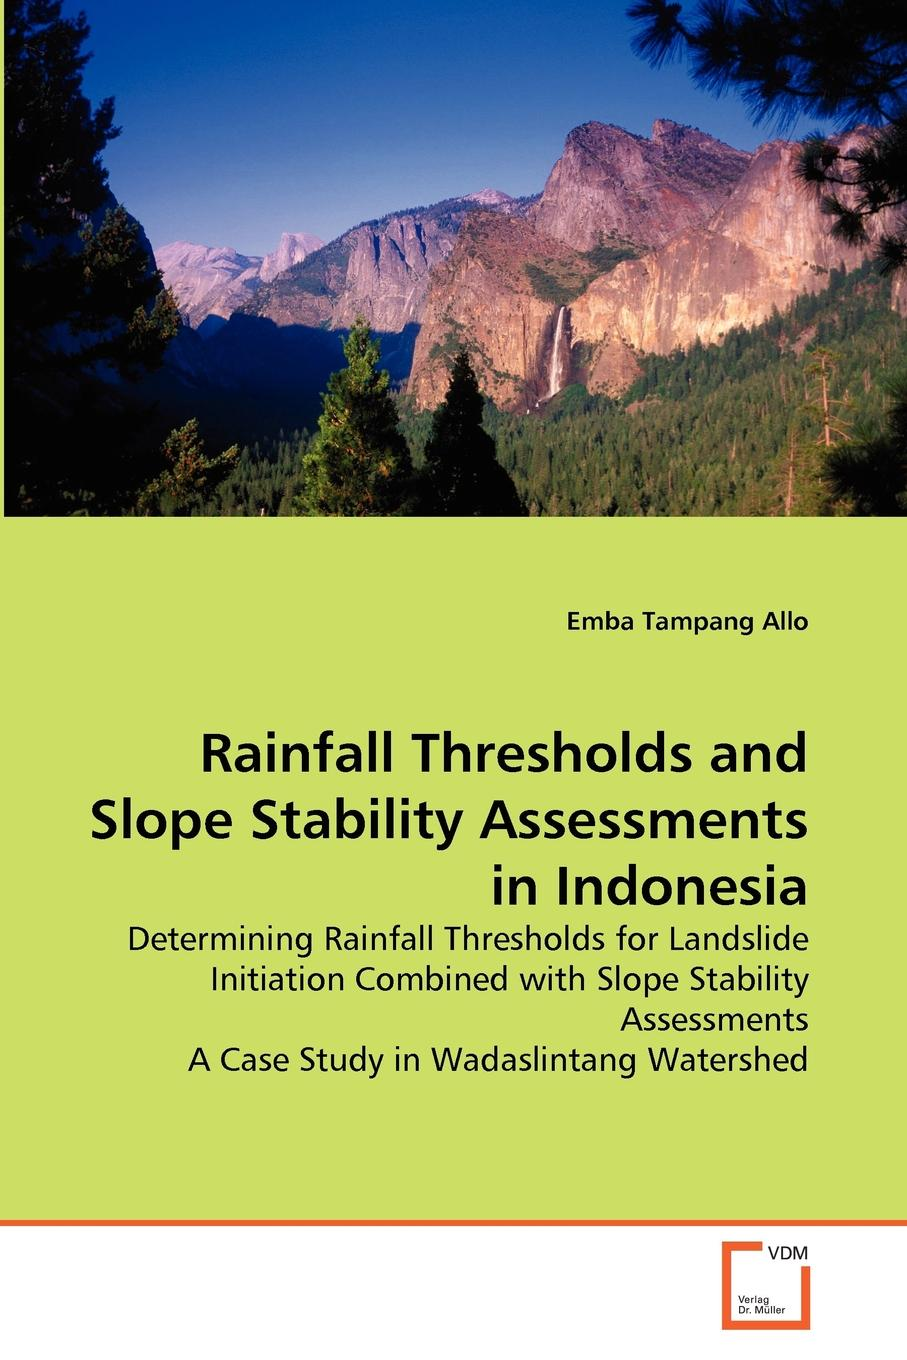 Emba Tampang Allo Rainfall Thresholds and Slope Stability Assessments in Indonesia haile adamu pattern ecological study of the woodland vegetation in metema area